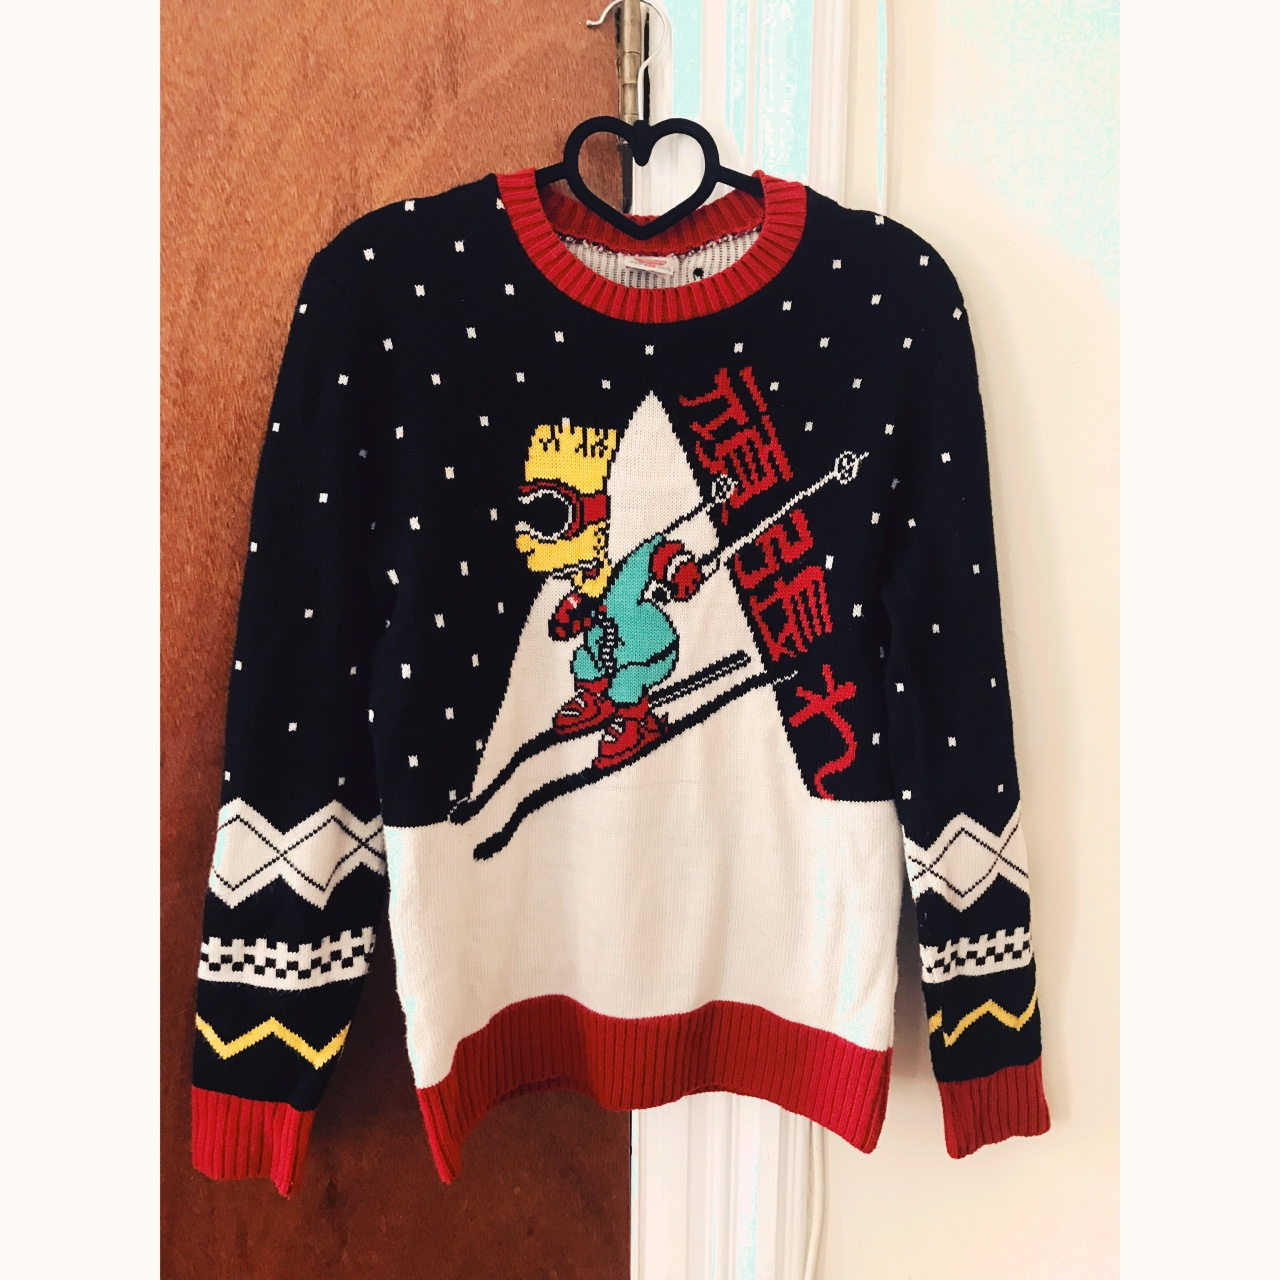 Urban Outfitters Ugly Christmas Sweater.Junk Food Bart Simpson Ugly Christmas Sweater Depop